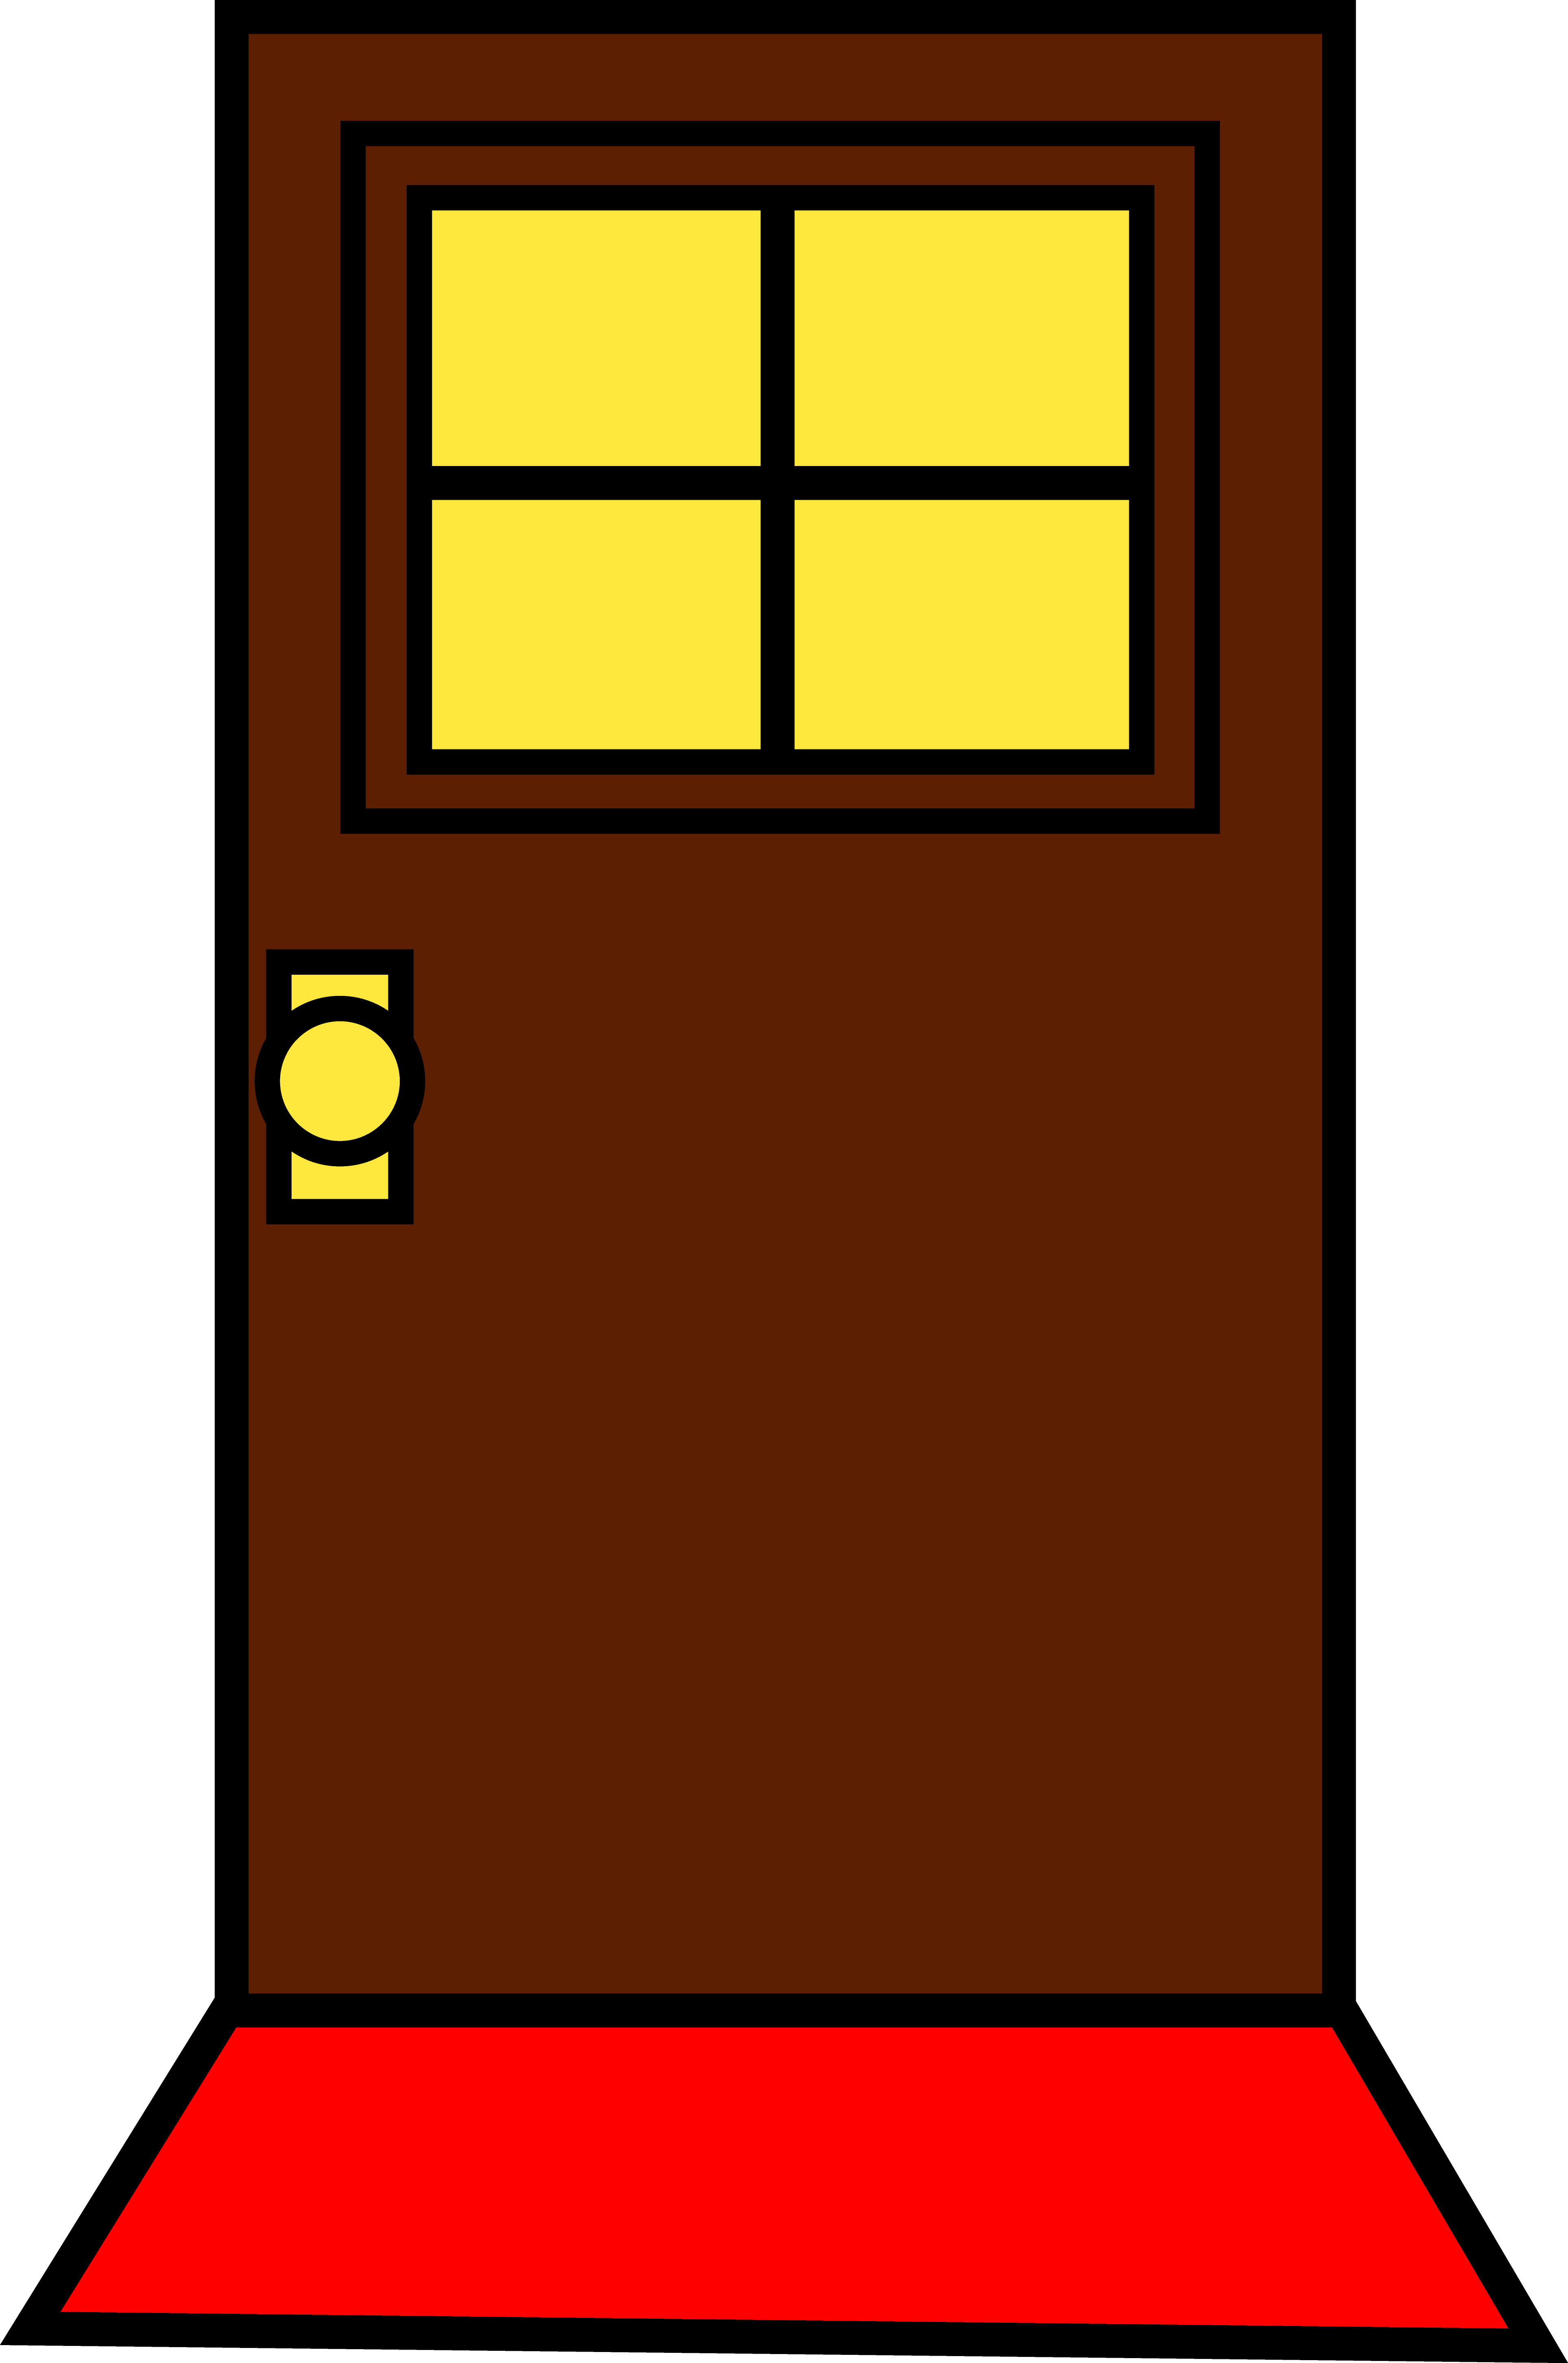 Bedroom Door Clipart | Clipart library - Free Clipart Images